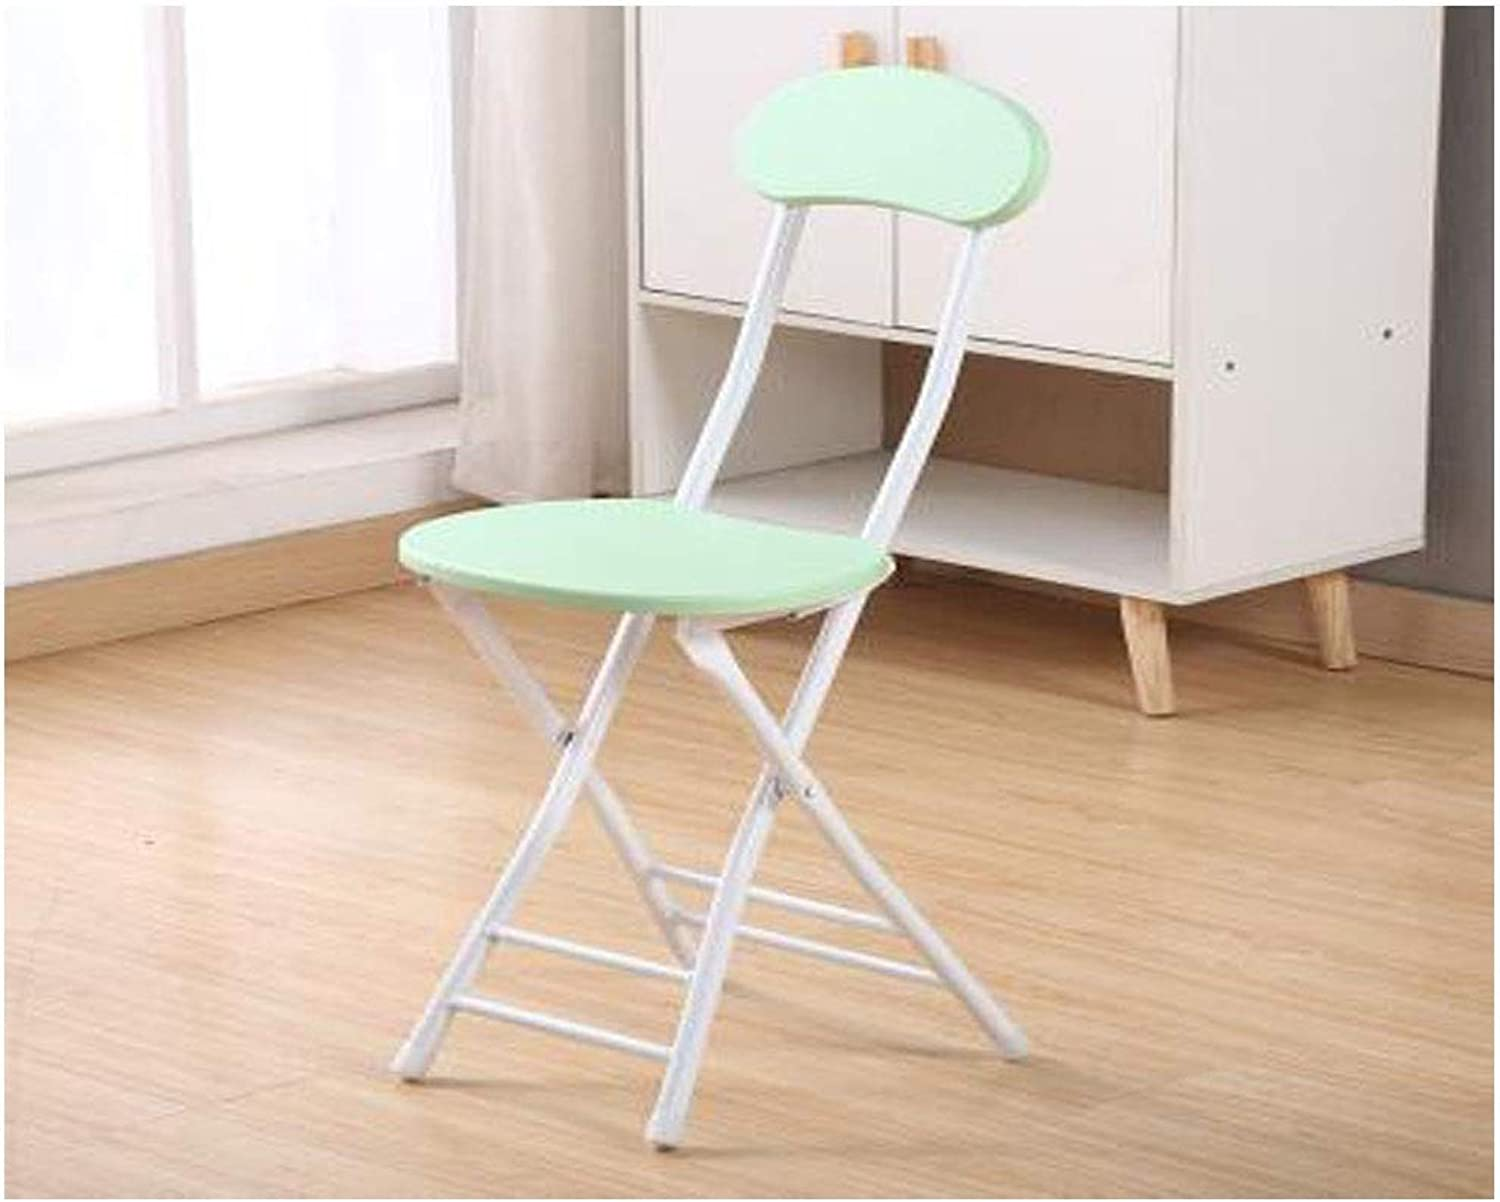 Yougou01 Folding Chair, Portable Fashion Chair, Simple Computer Chair, Suitable for Home, Restaurant, Office Training, Multi-color Optional Sell Well